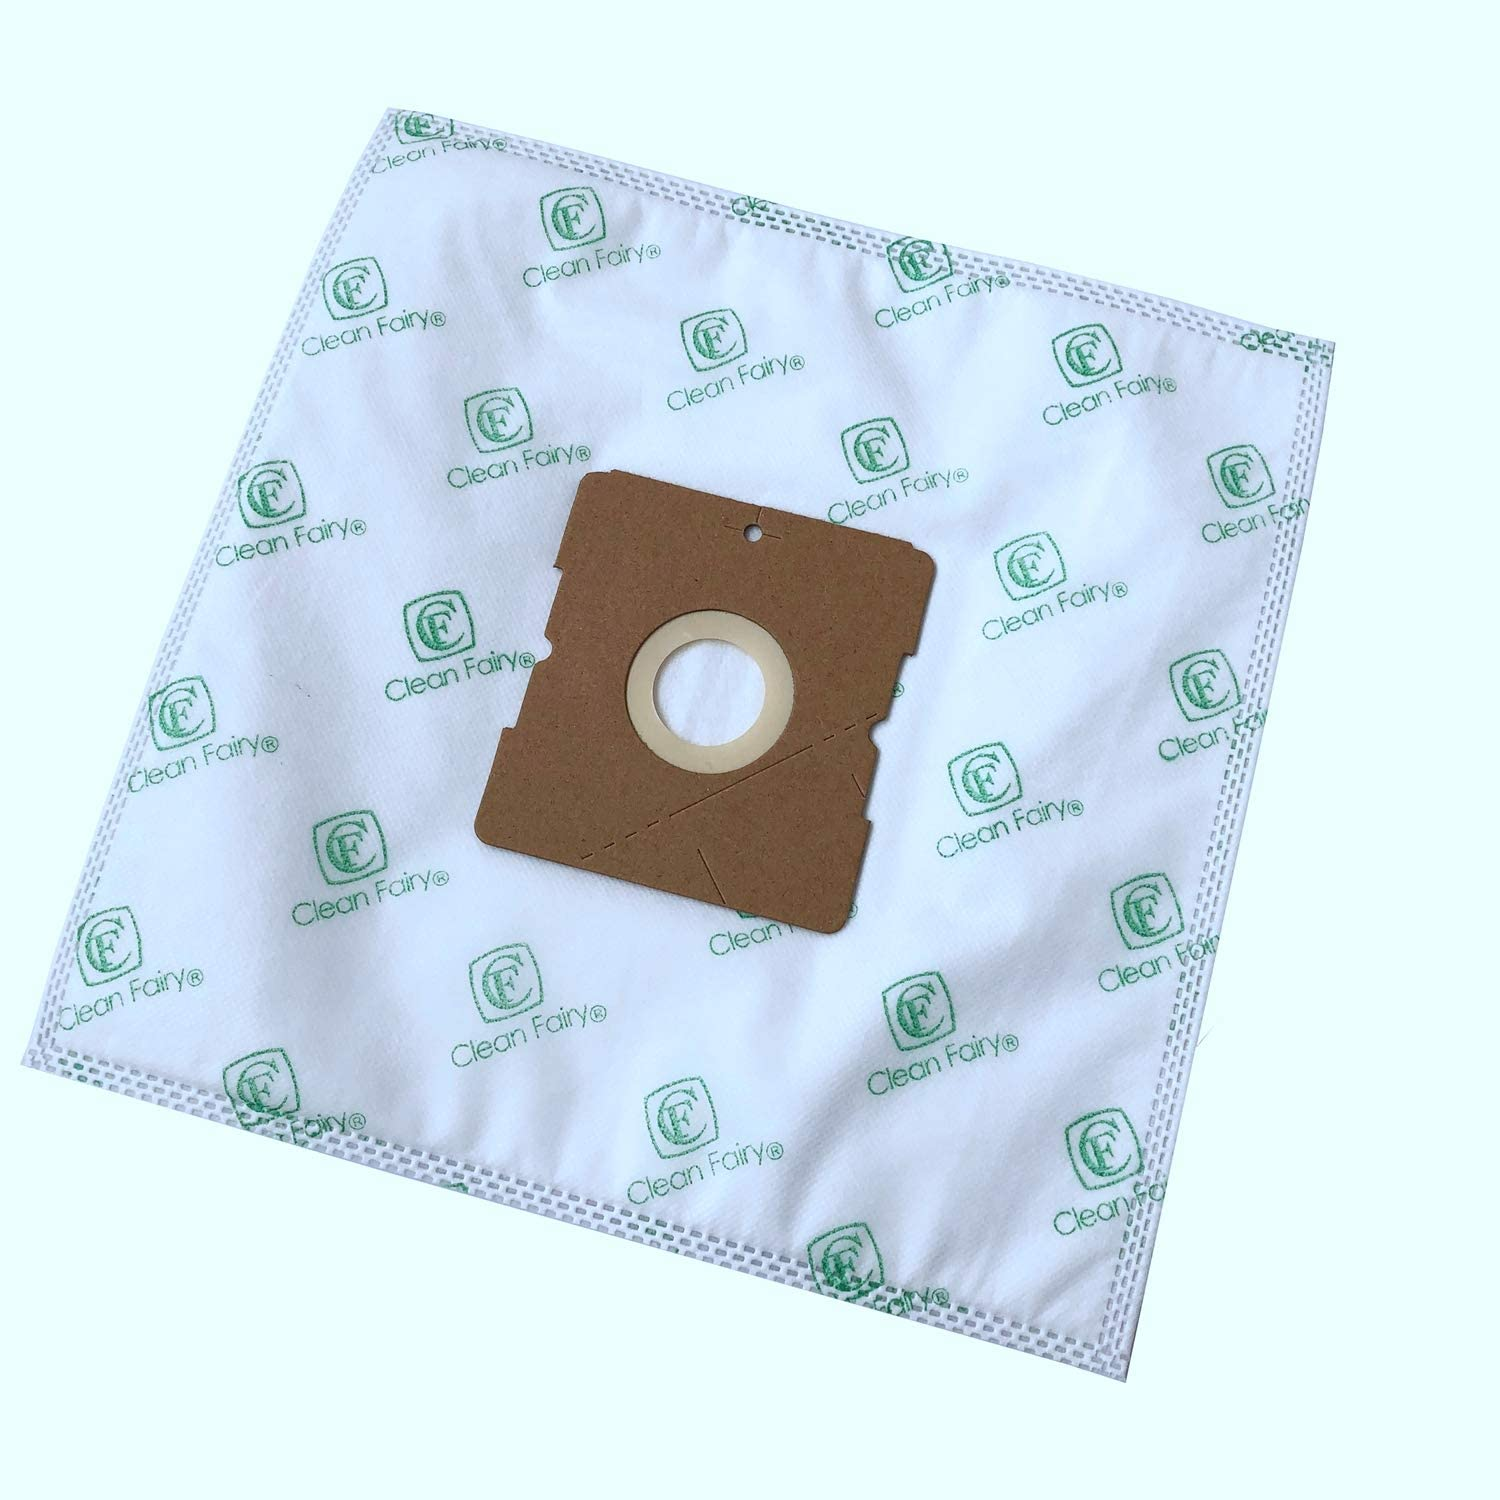 CF Clean Fairy Vacuum Bags for Bissell 203-7270 Clean Along 48K2 Canister, Also Suitable for Samsung VC08, Severin BC 7045, BC 7055, BC 7055, 7058, Dirt Devil DD 7071-0 (15 Bags)